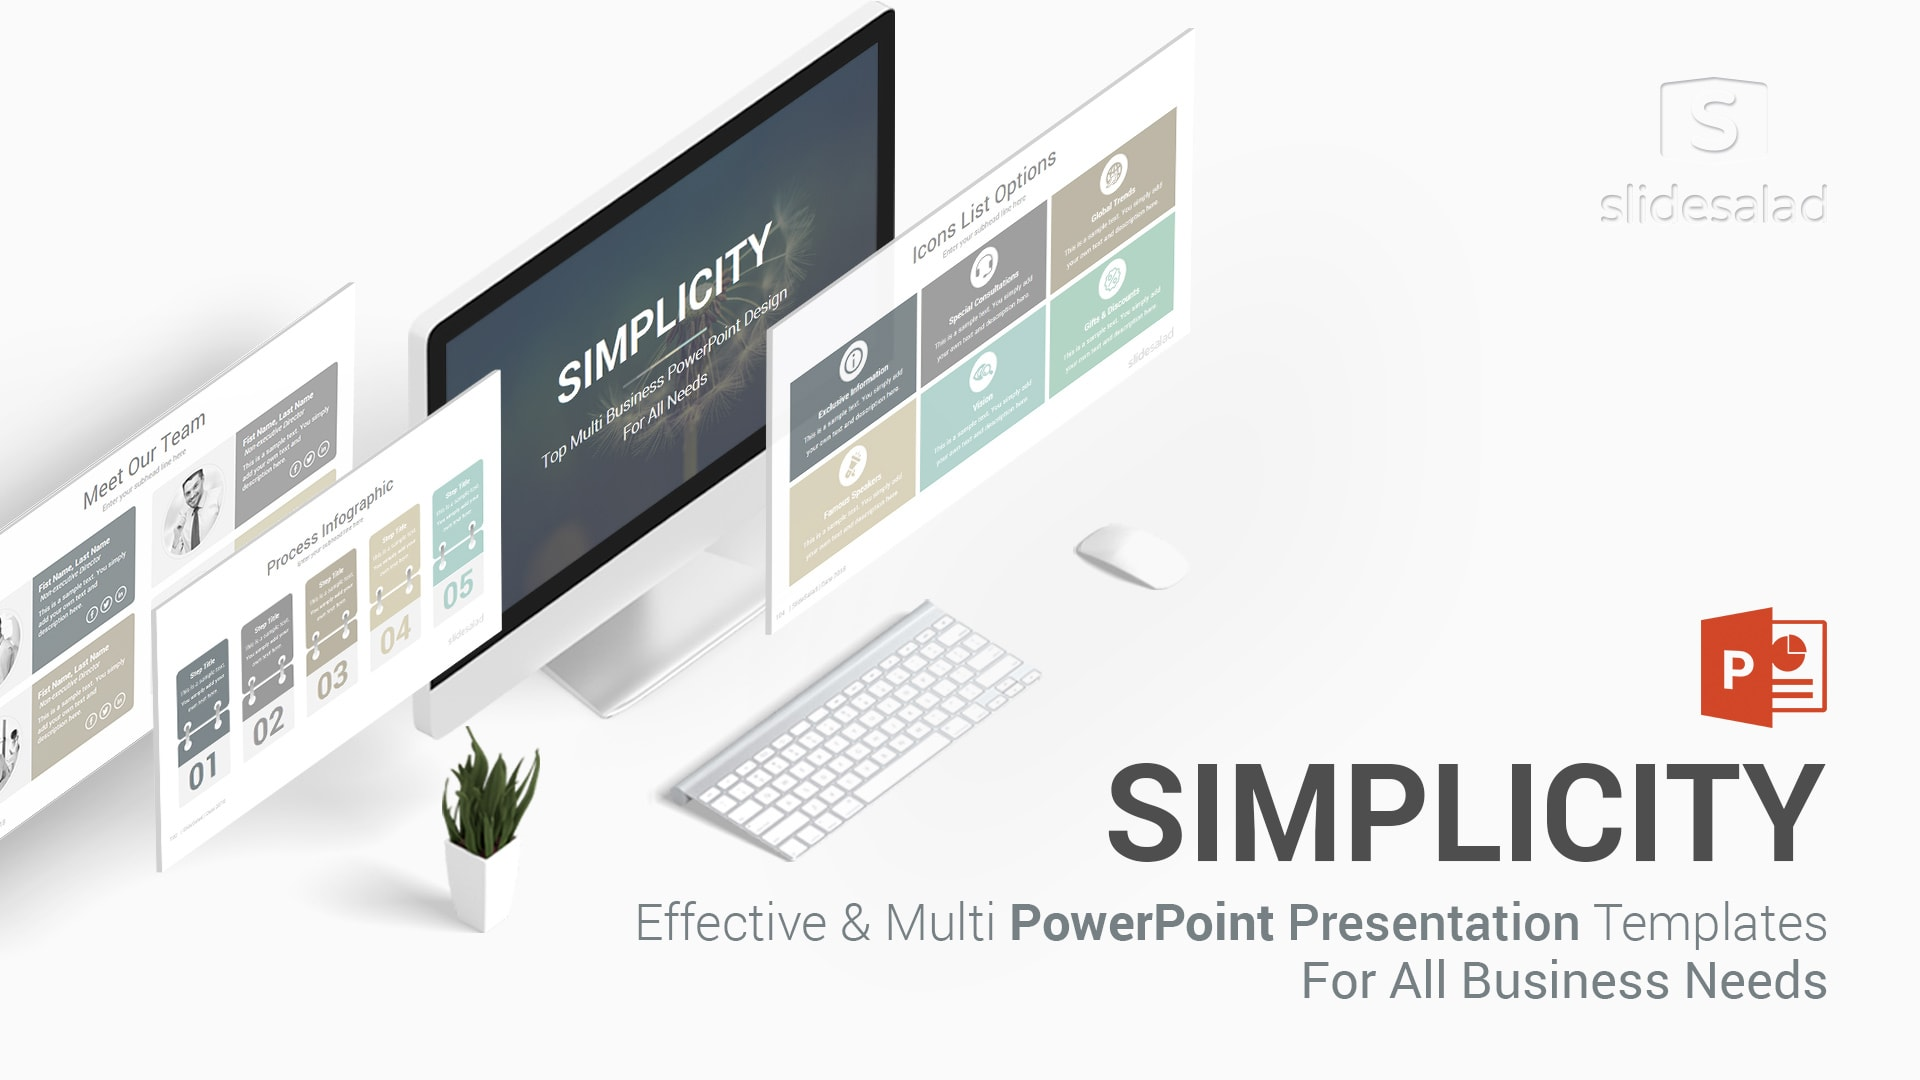 Simplicity Professional Business Proposal PowerPoint Templates – Business Pitch Deck for PowerPoint